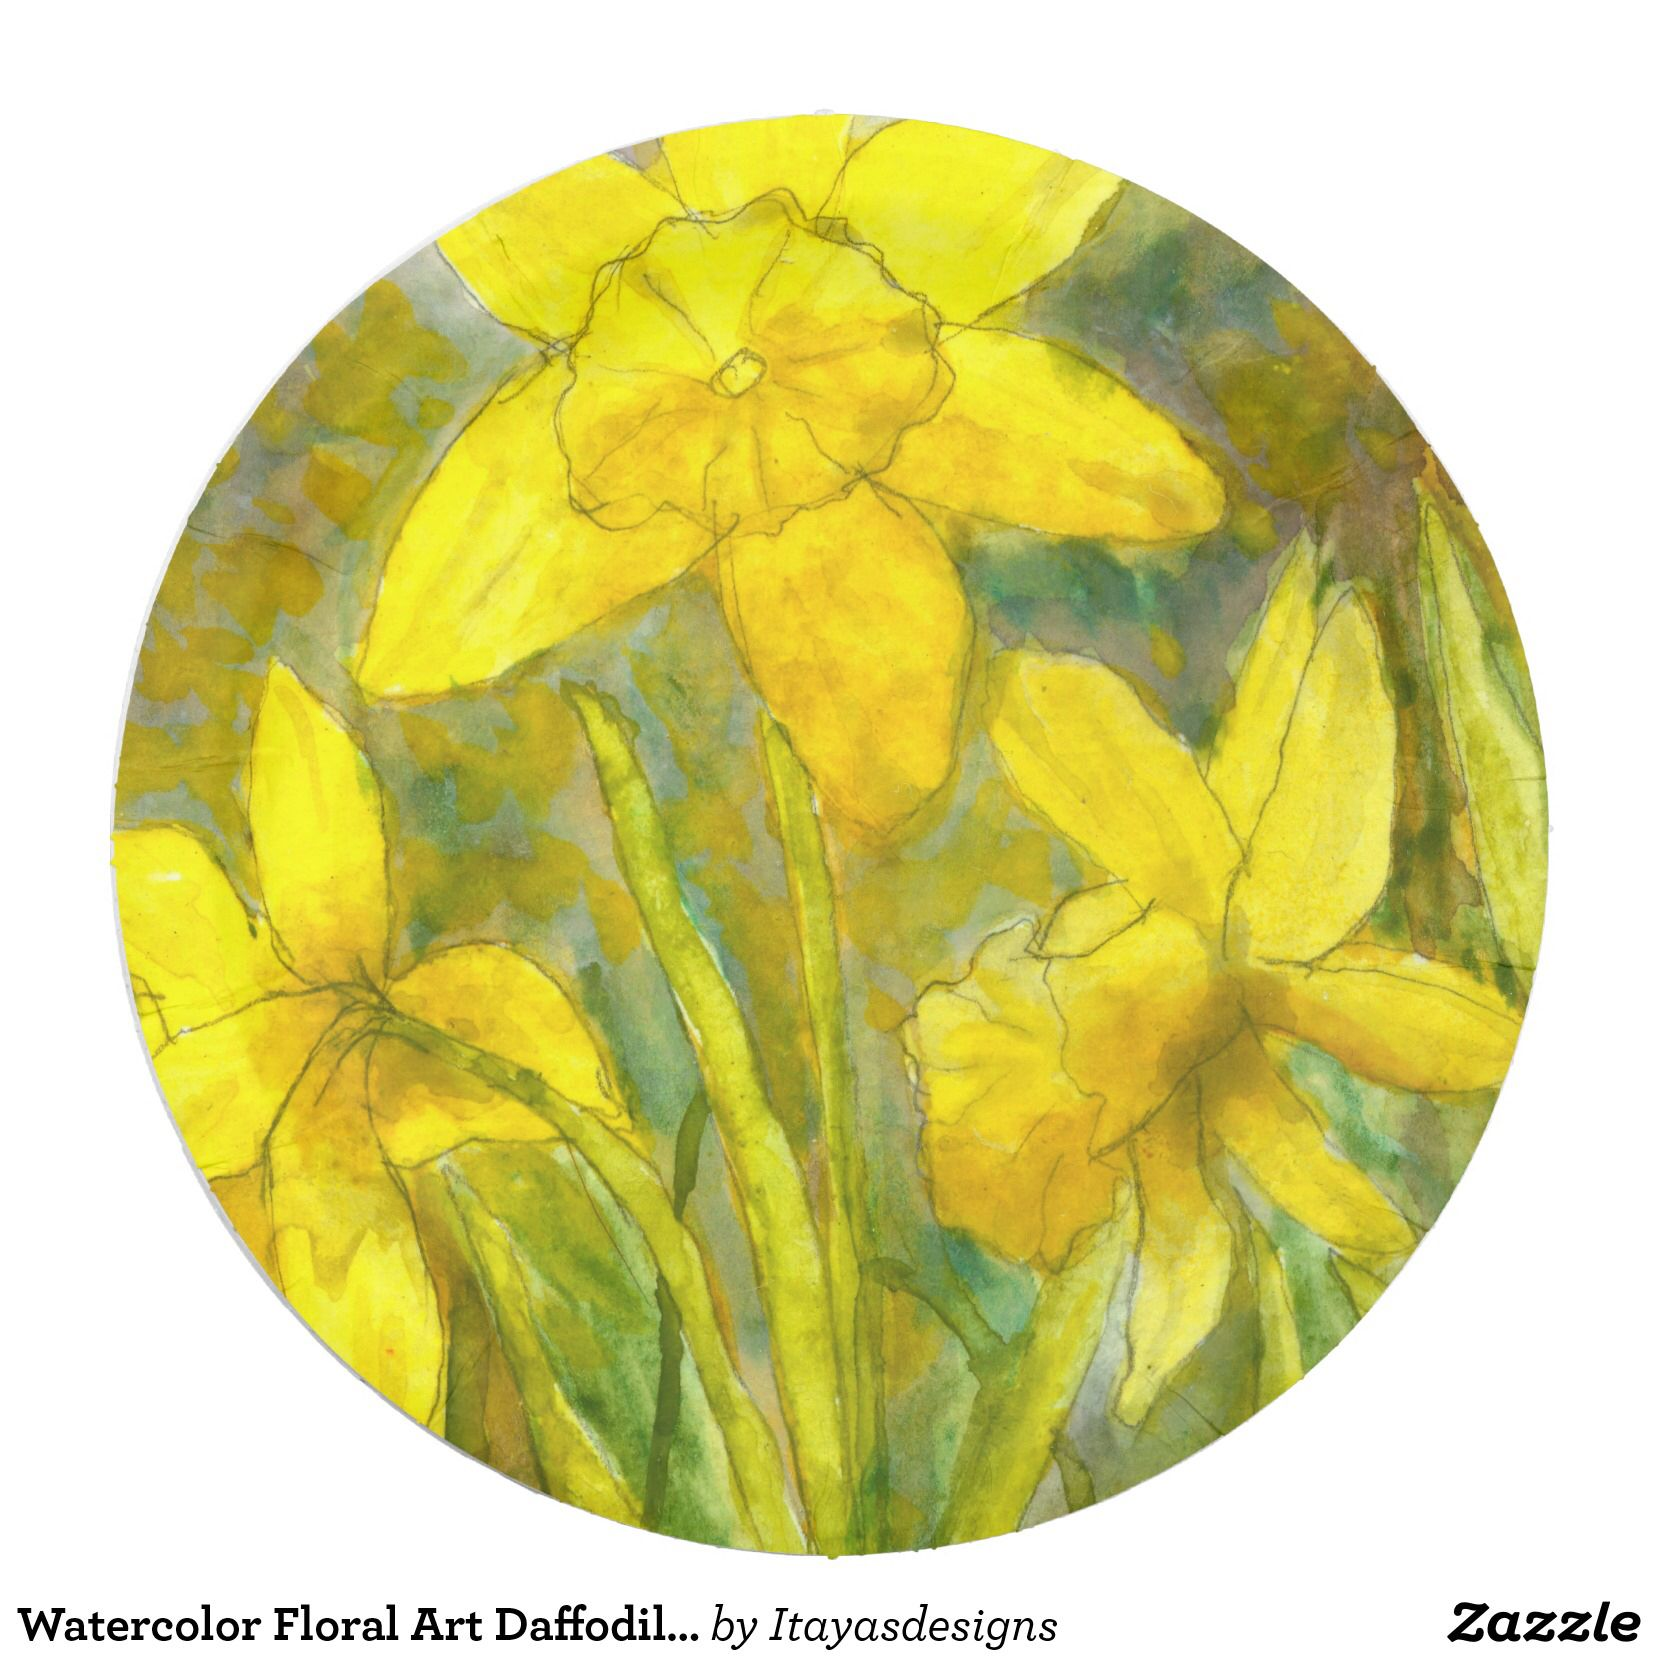 Watercolor Floral Art Daffodils Yellow Wildflowers. SOLD!!